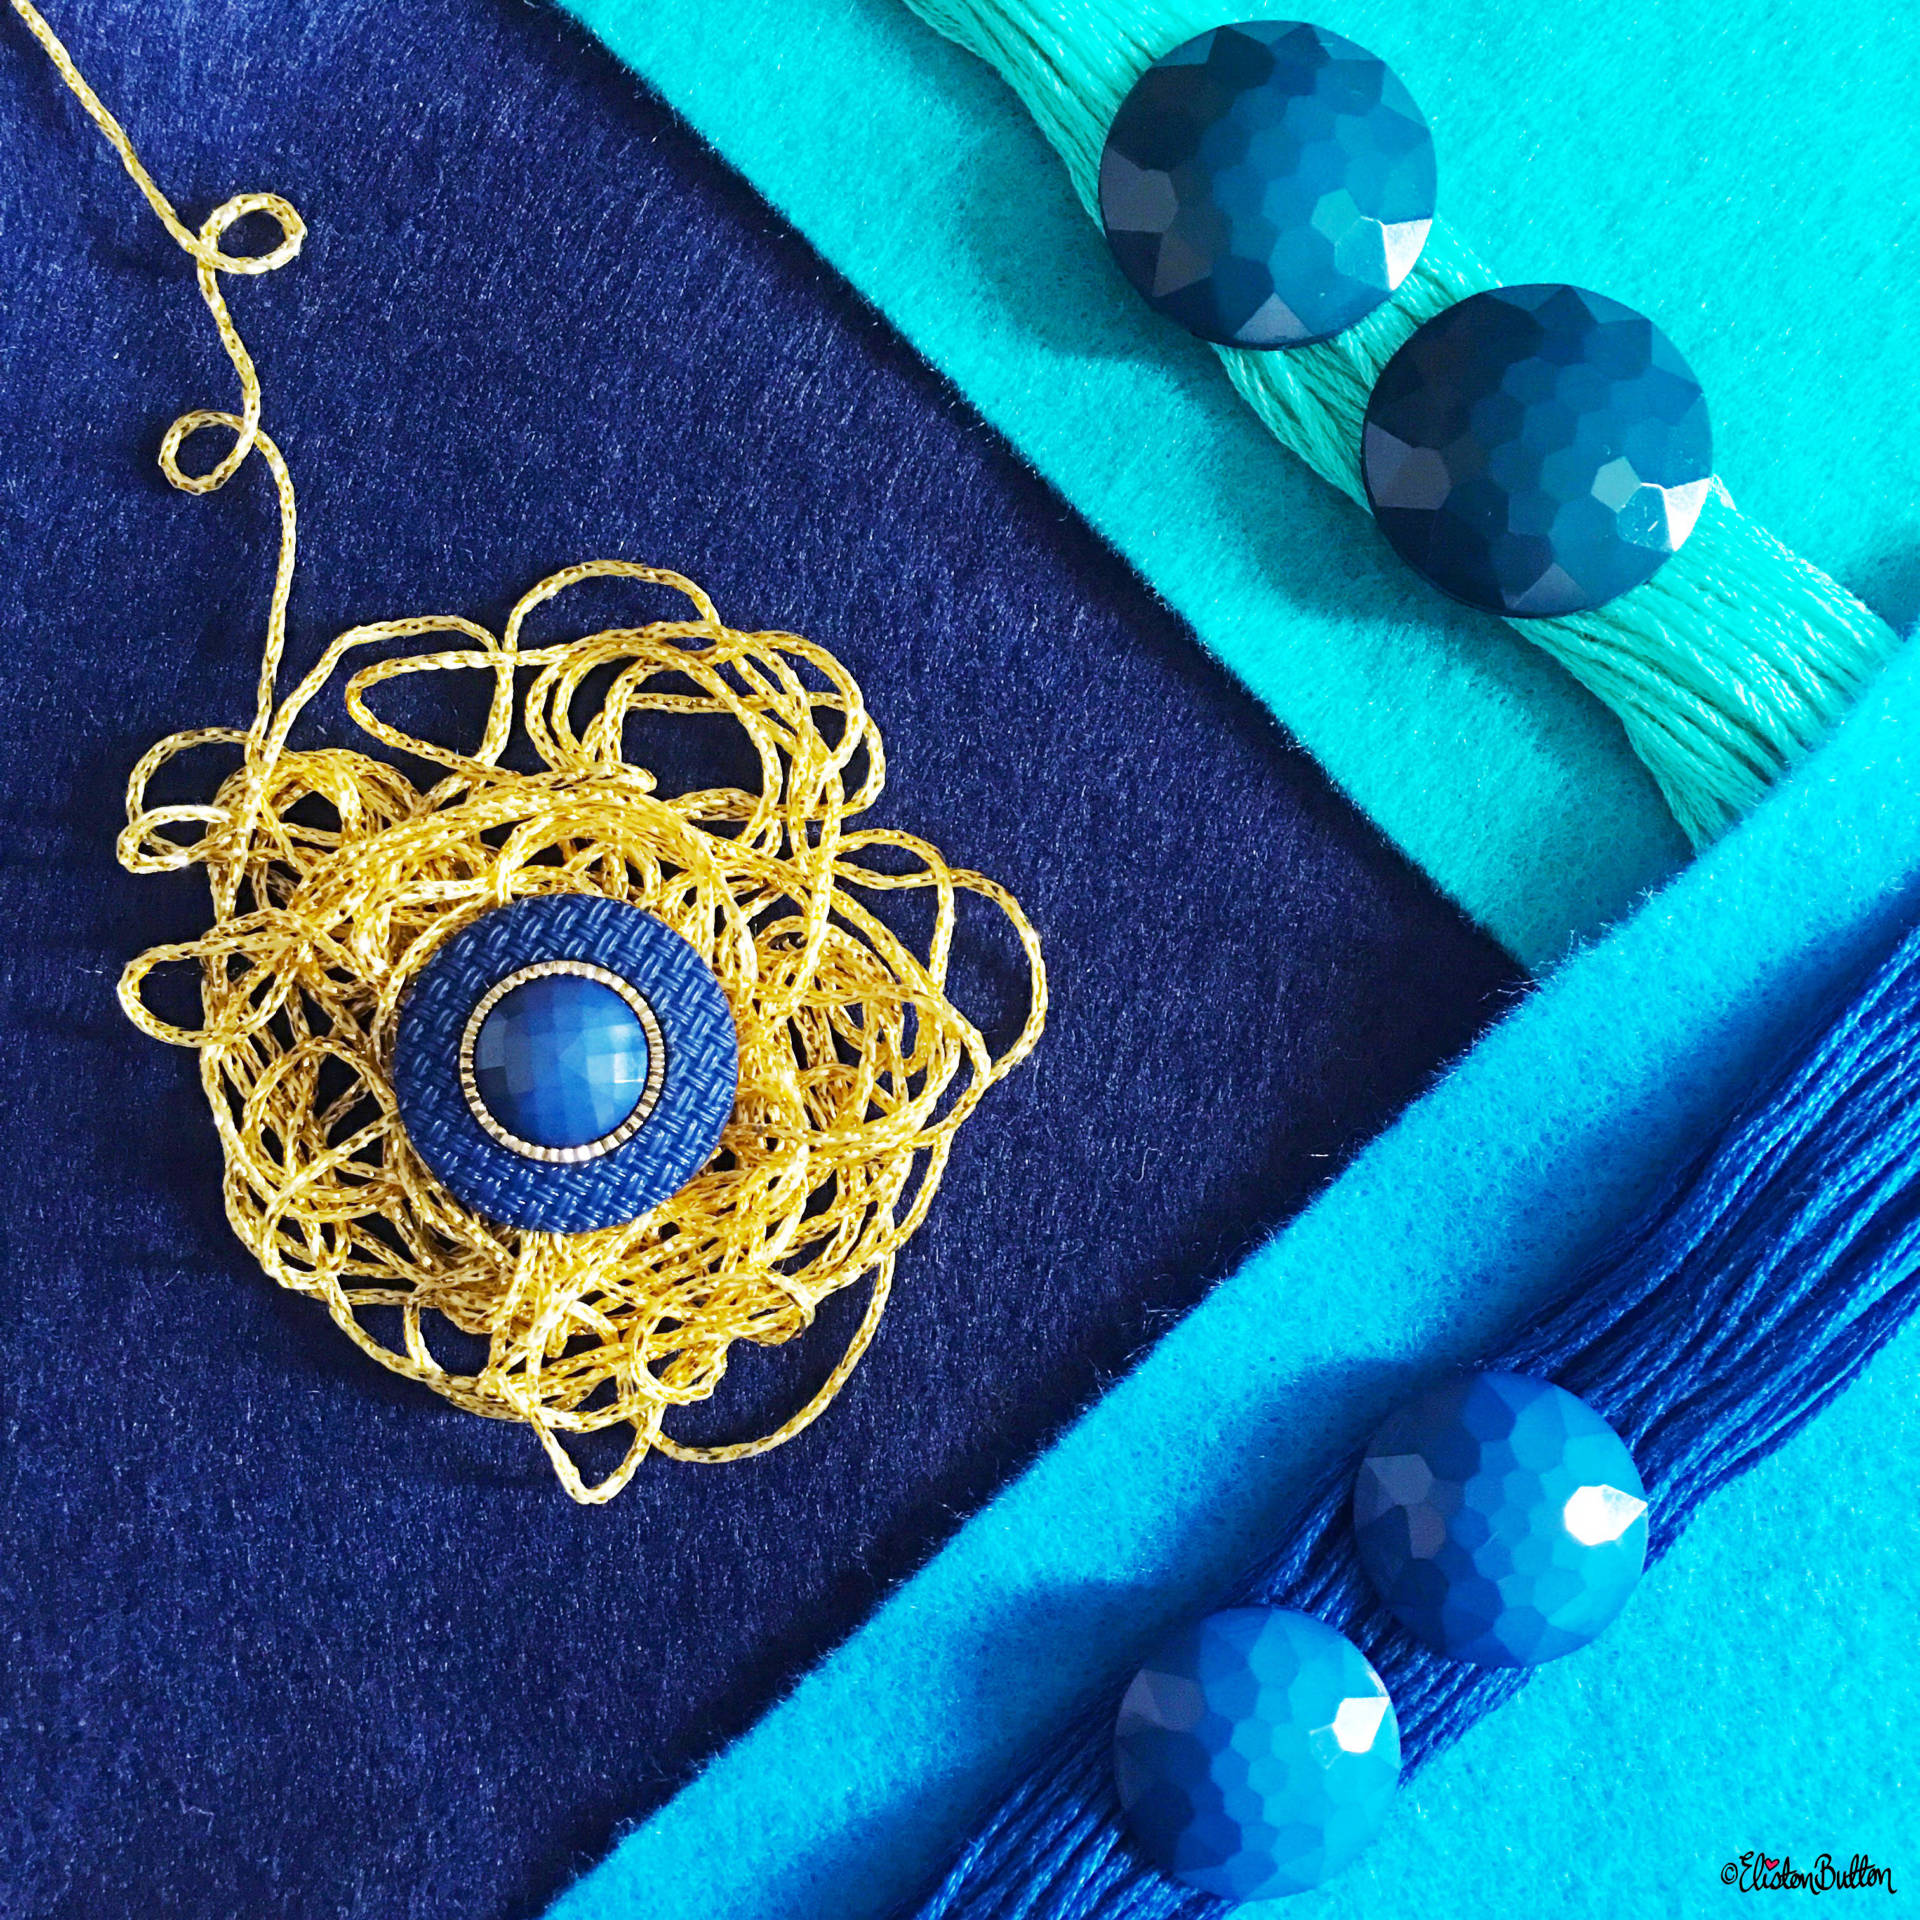 Blue, Turquoise and Gold Button and Felt Colour Palette - Around Here…August 2016 at www.elistonbutton.com - Eliston Button - That Crafty Kid – Art, Design, Craft & Adventure.